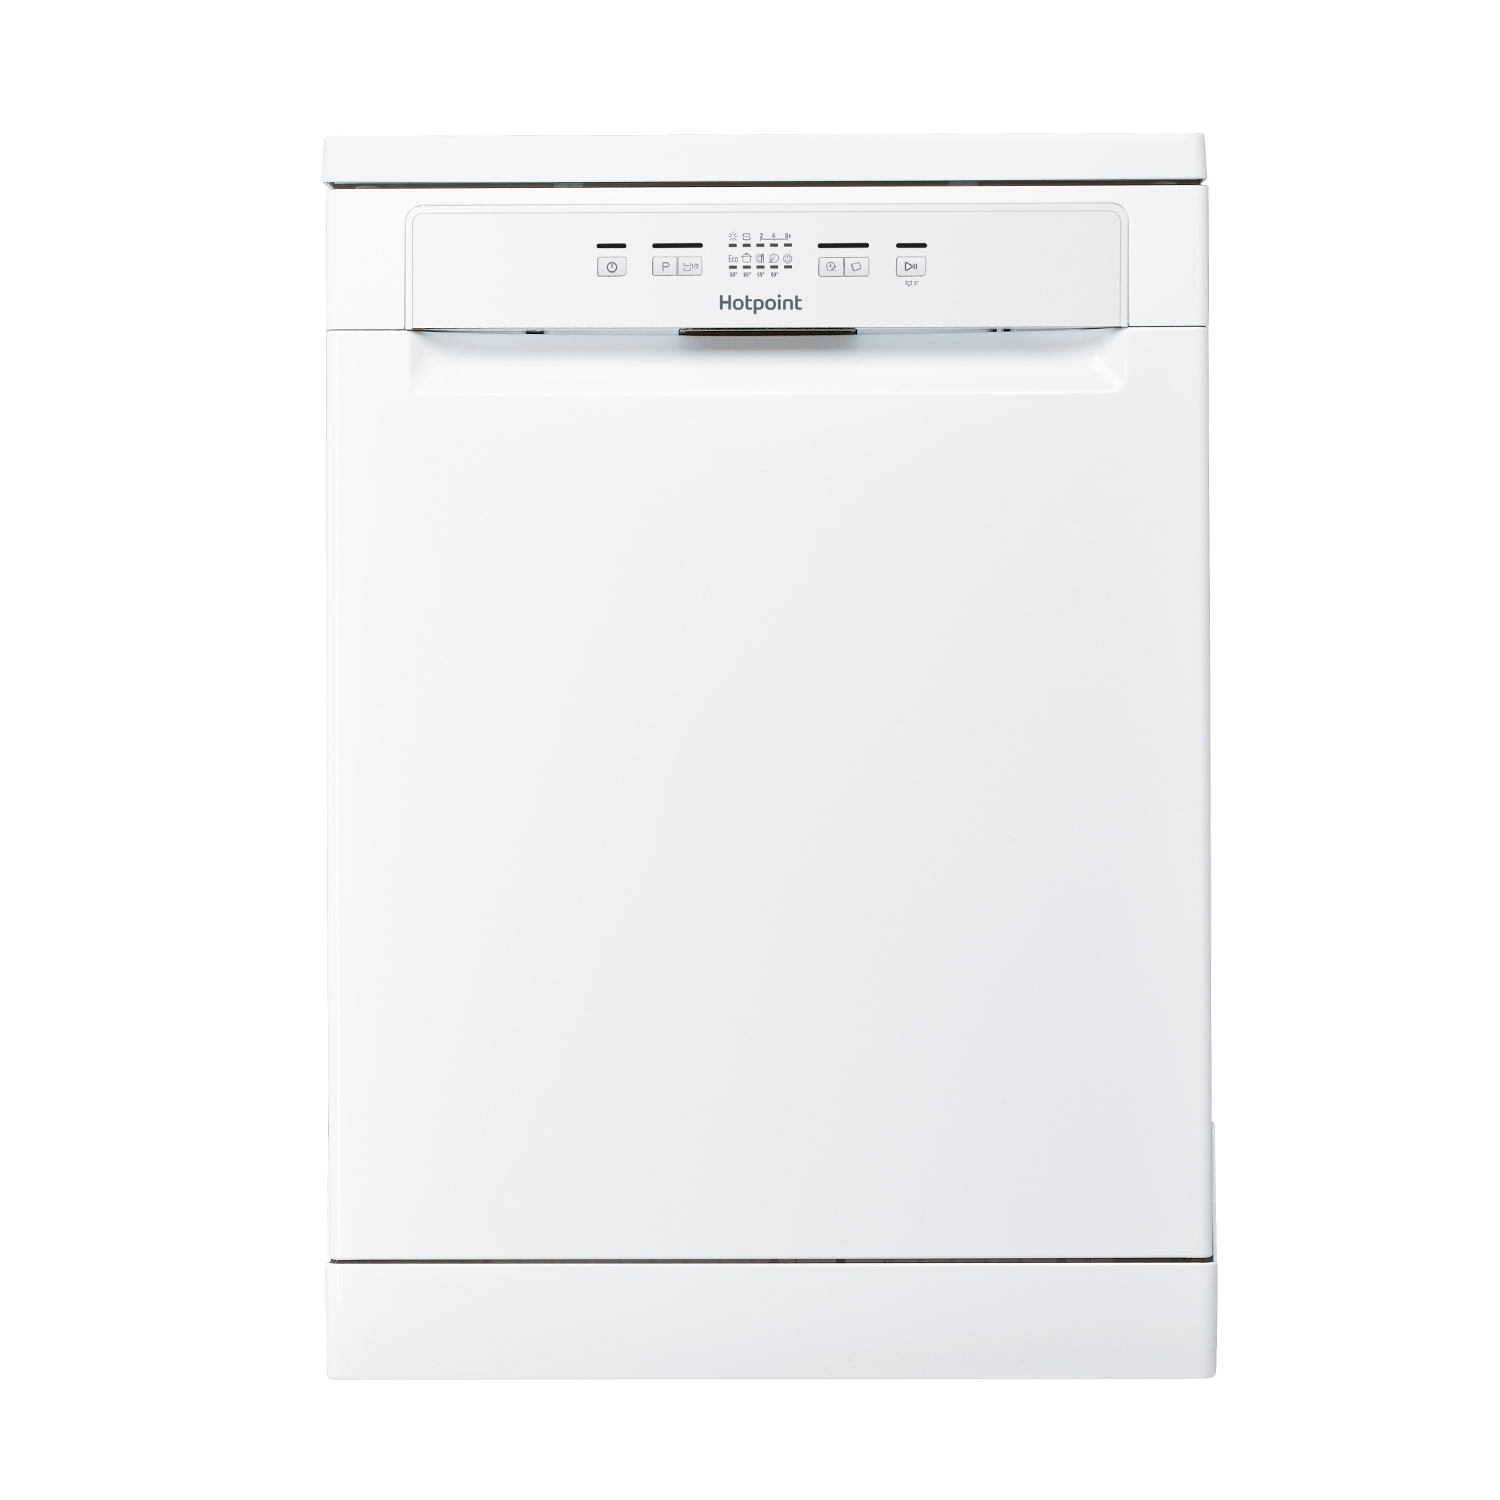 Hotpoint Full Size Dishwasher - White - A+ Rated - 0